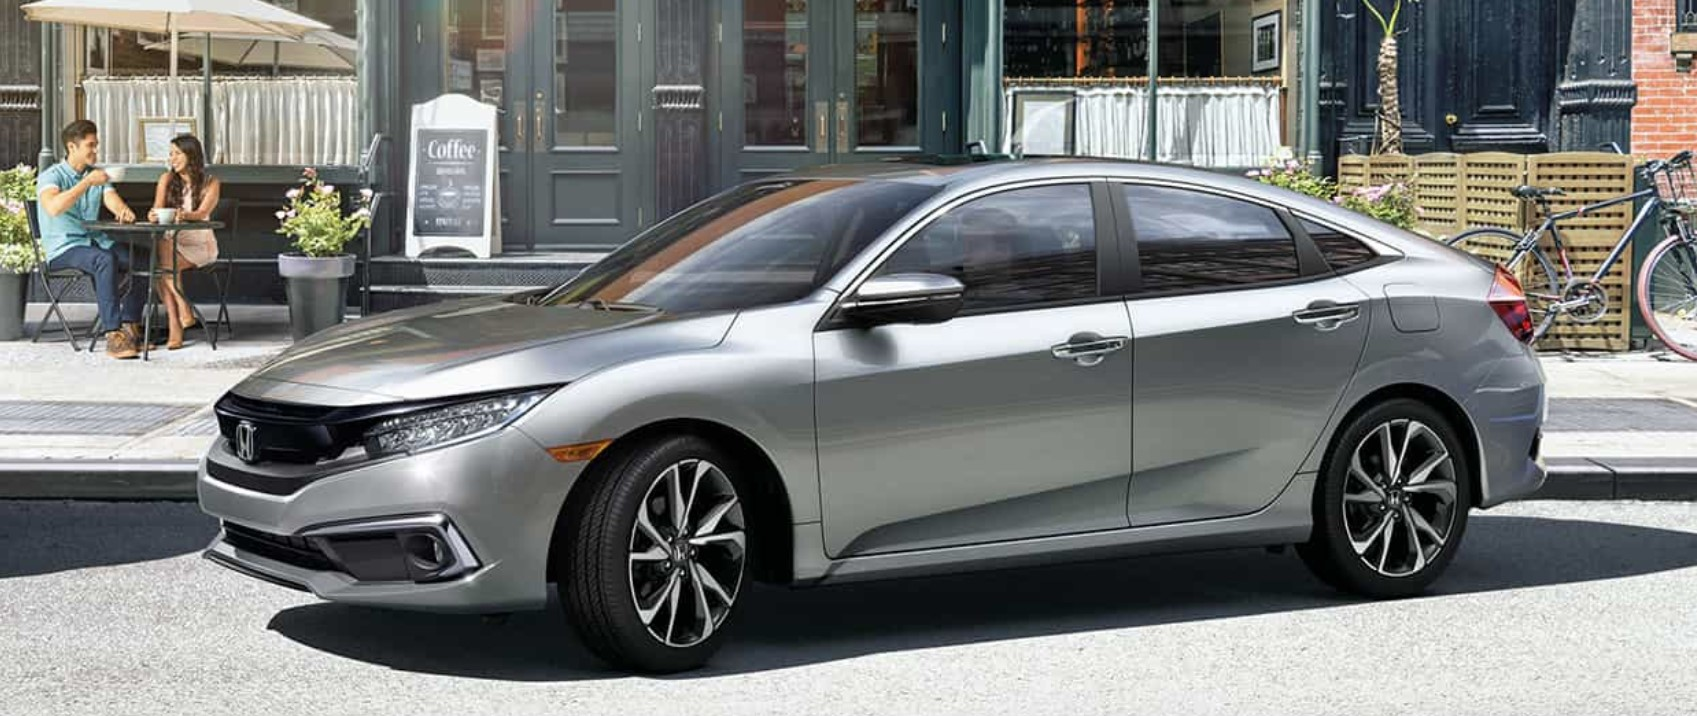 2019 Honda Civic Sedan Gray Parking Exterior